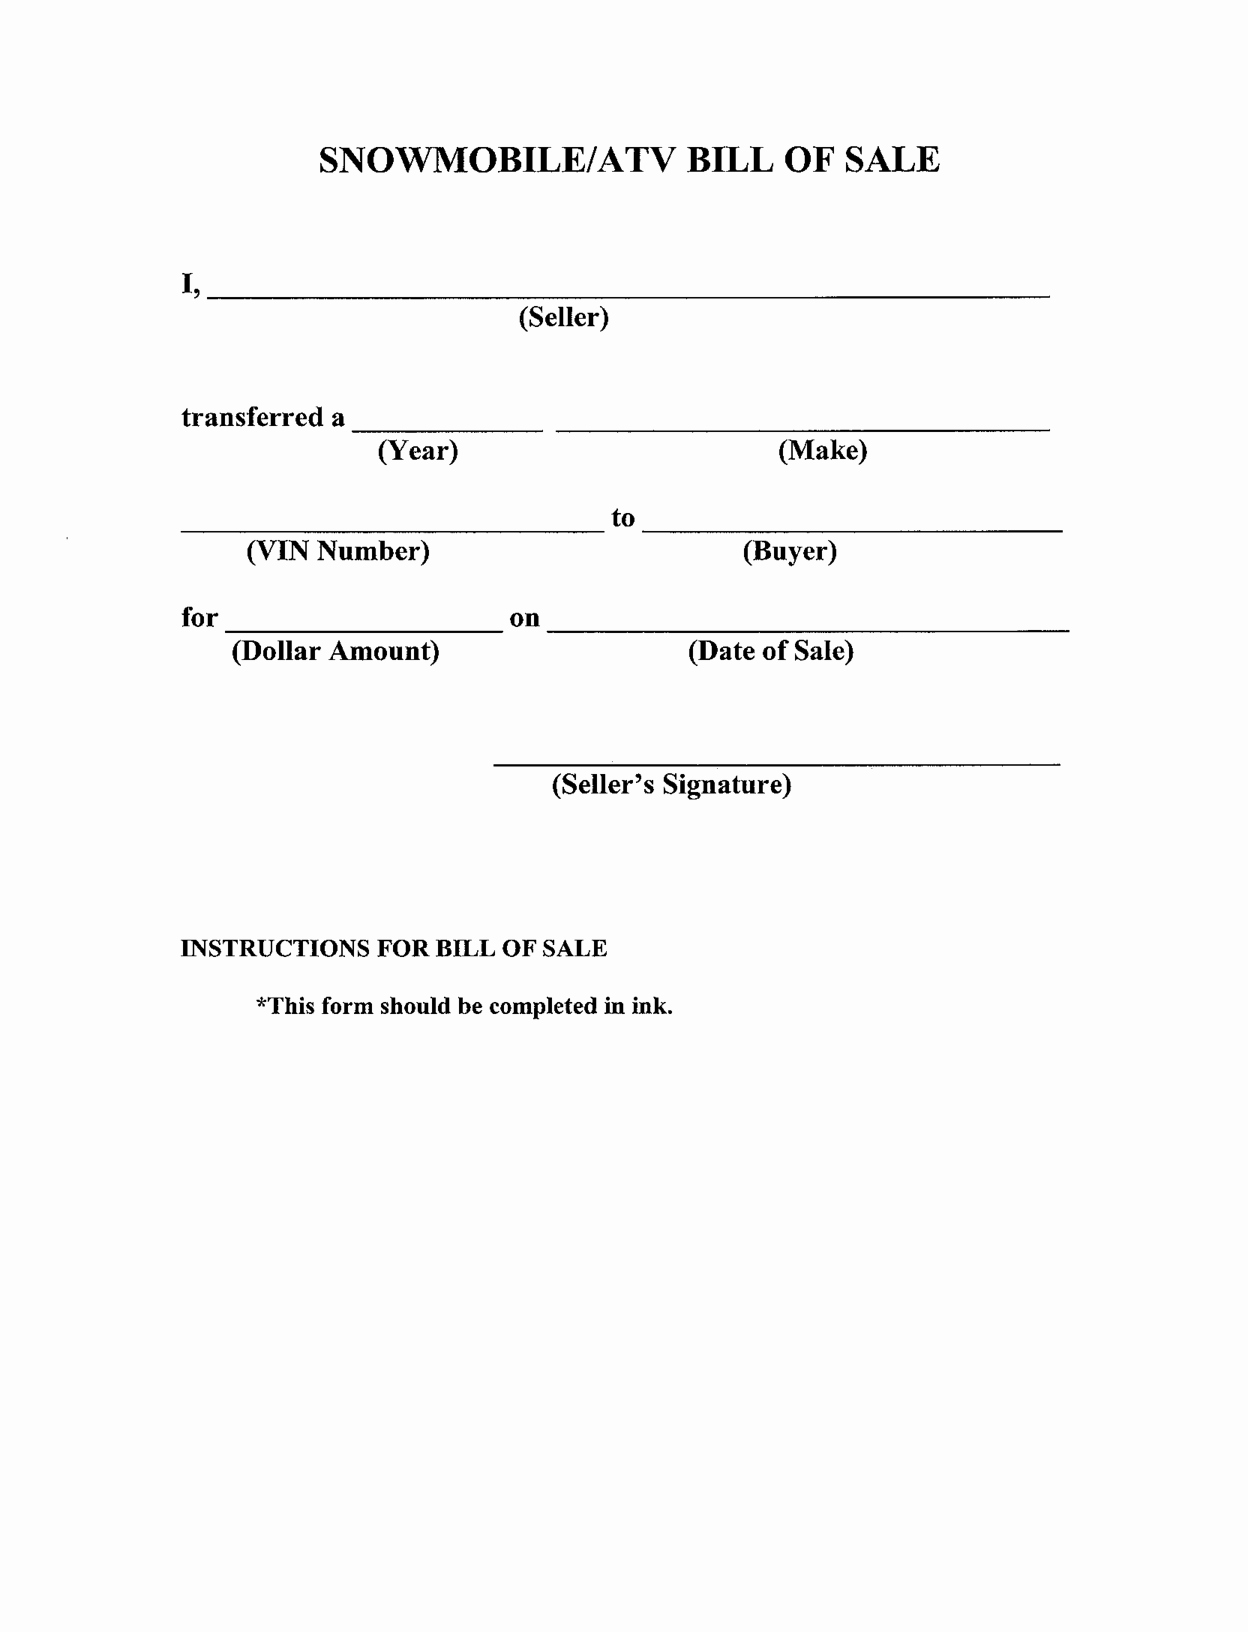 Bill Of Sale Sample form Elegant Free Printable Bill Of Sale Templates form Generic